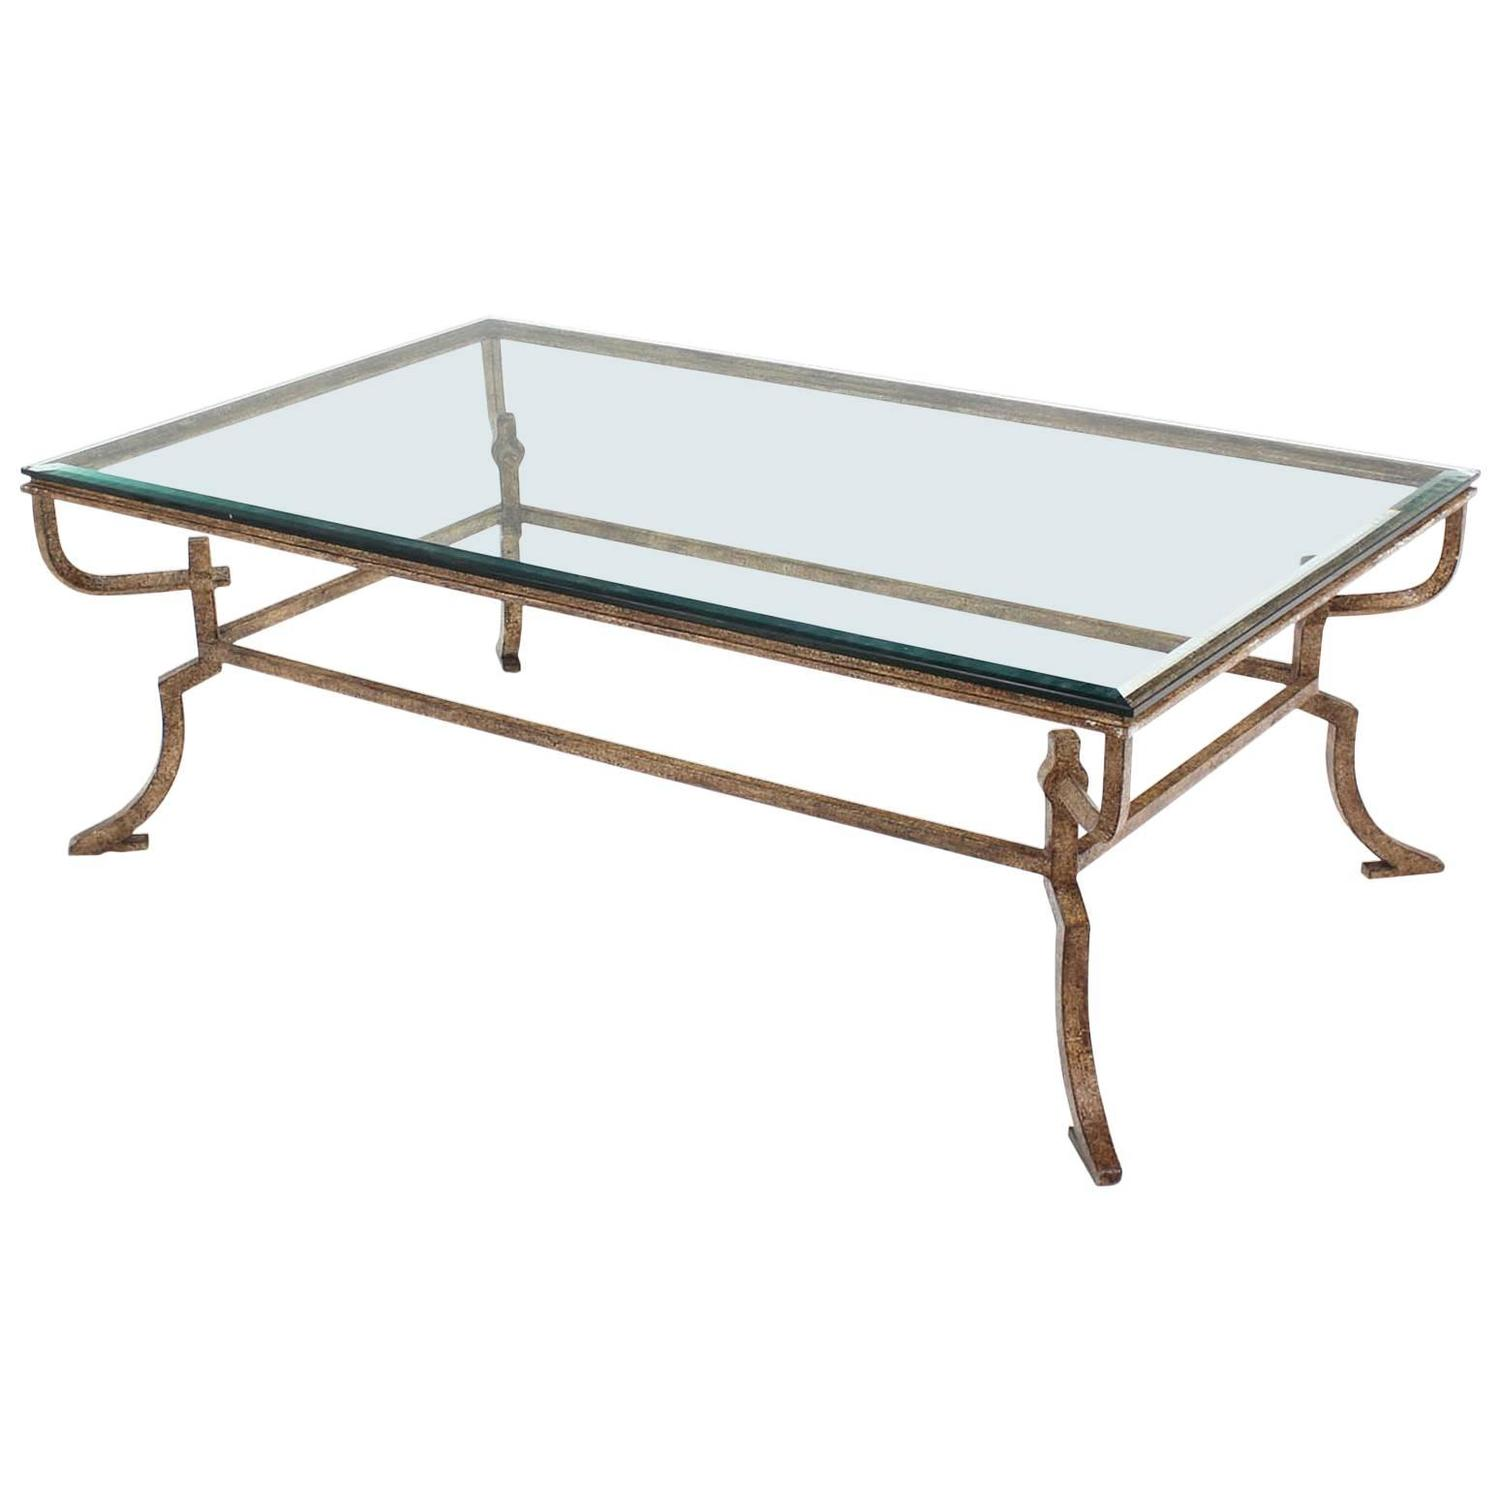 Glass Top Coffee Table With Iron Base: Heavy Wrought Iron Studio Work Base Glass Top Coffee Table